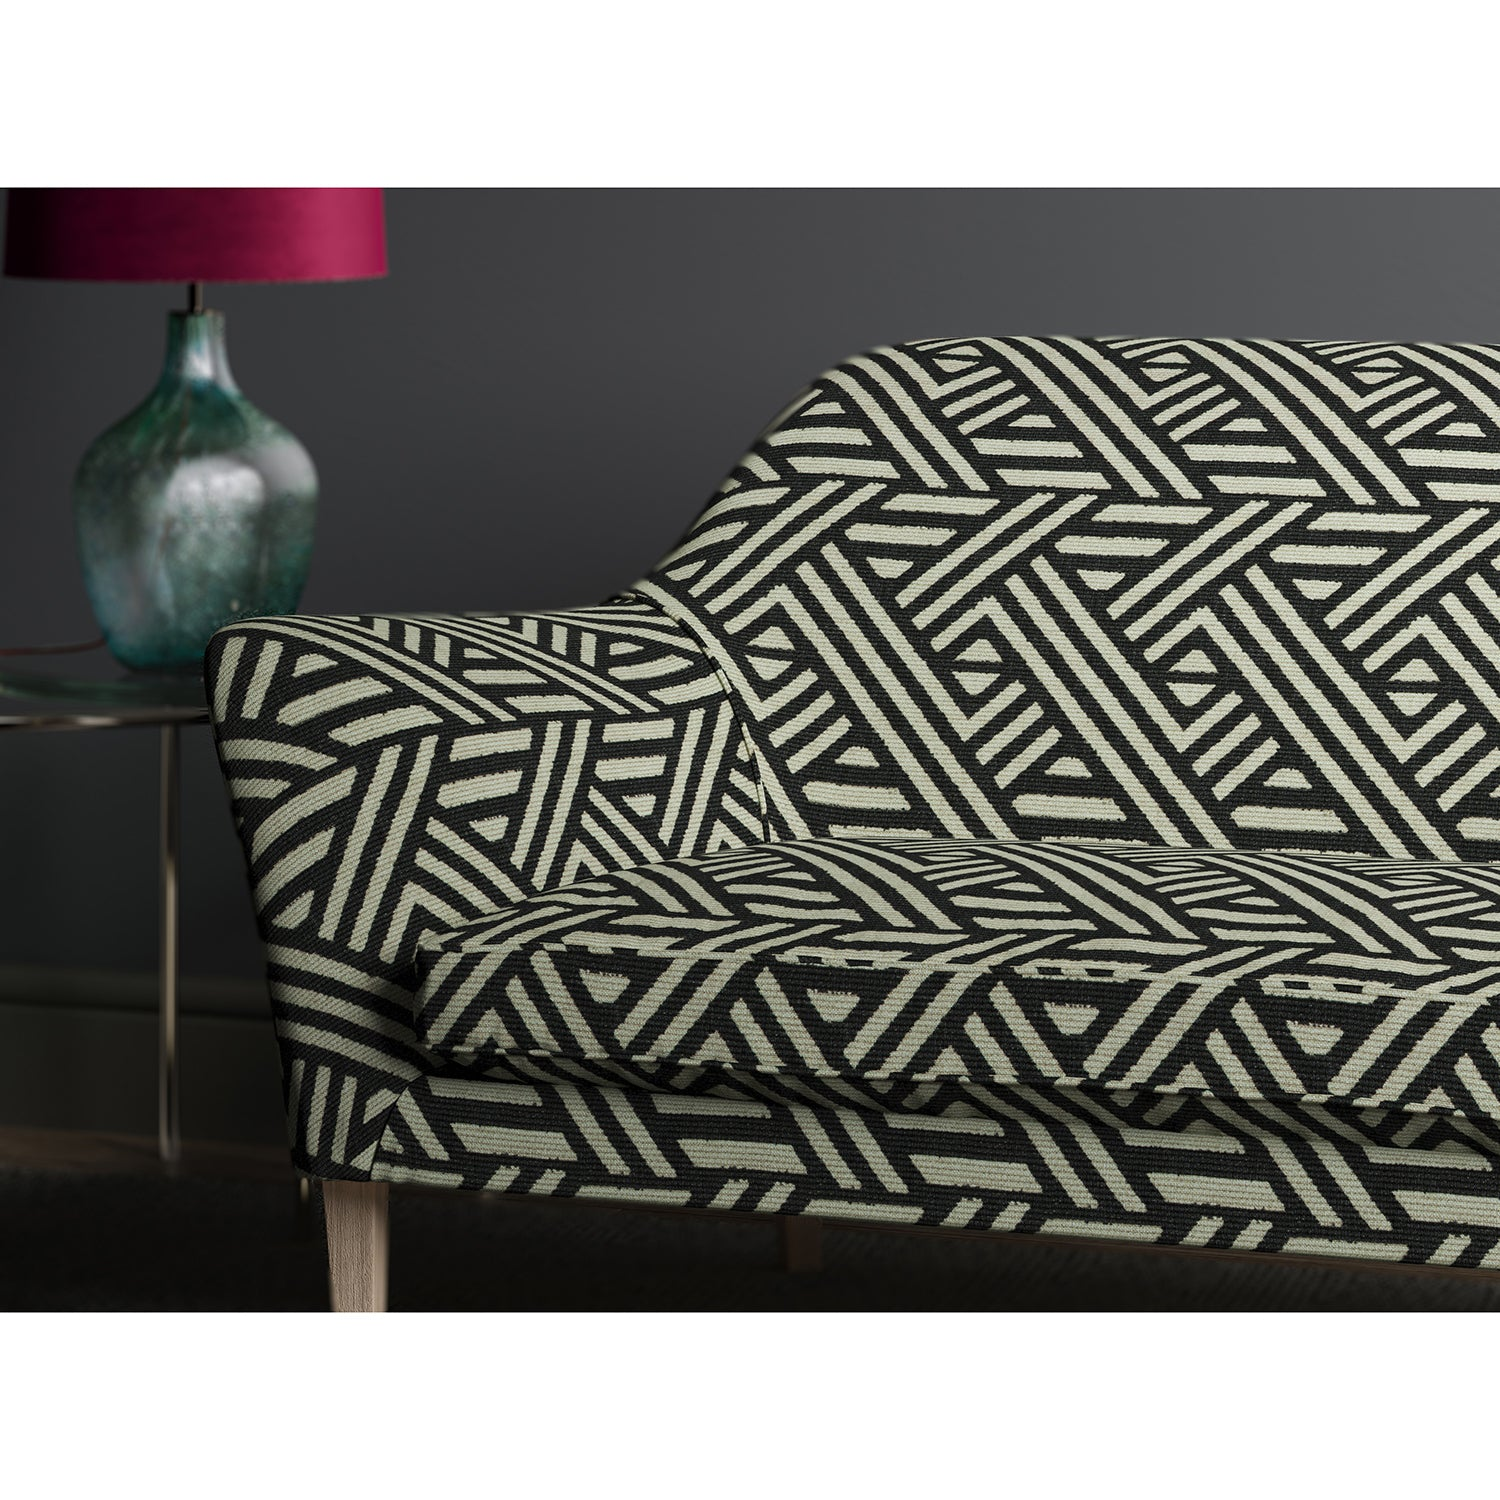 Sofa in design name Pampas, colourway Charcoal from Tango